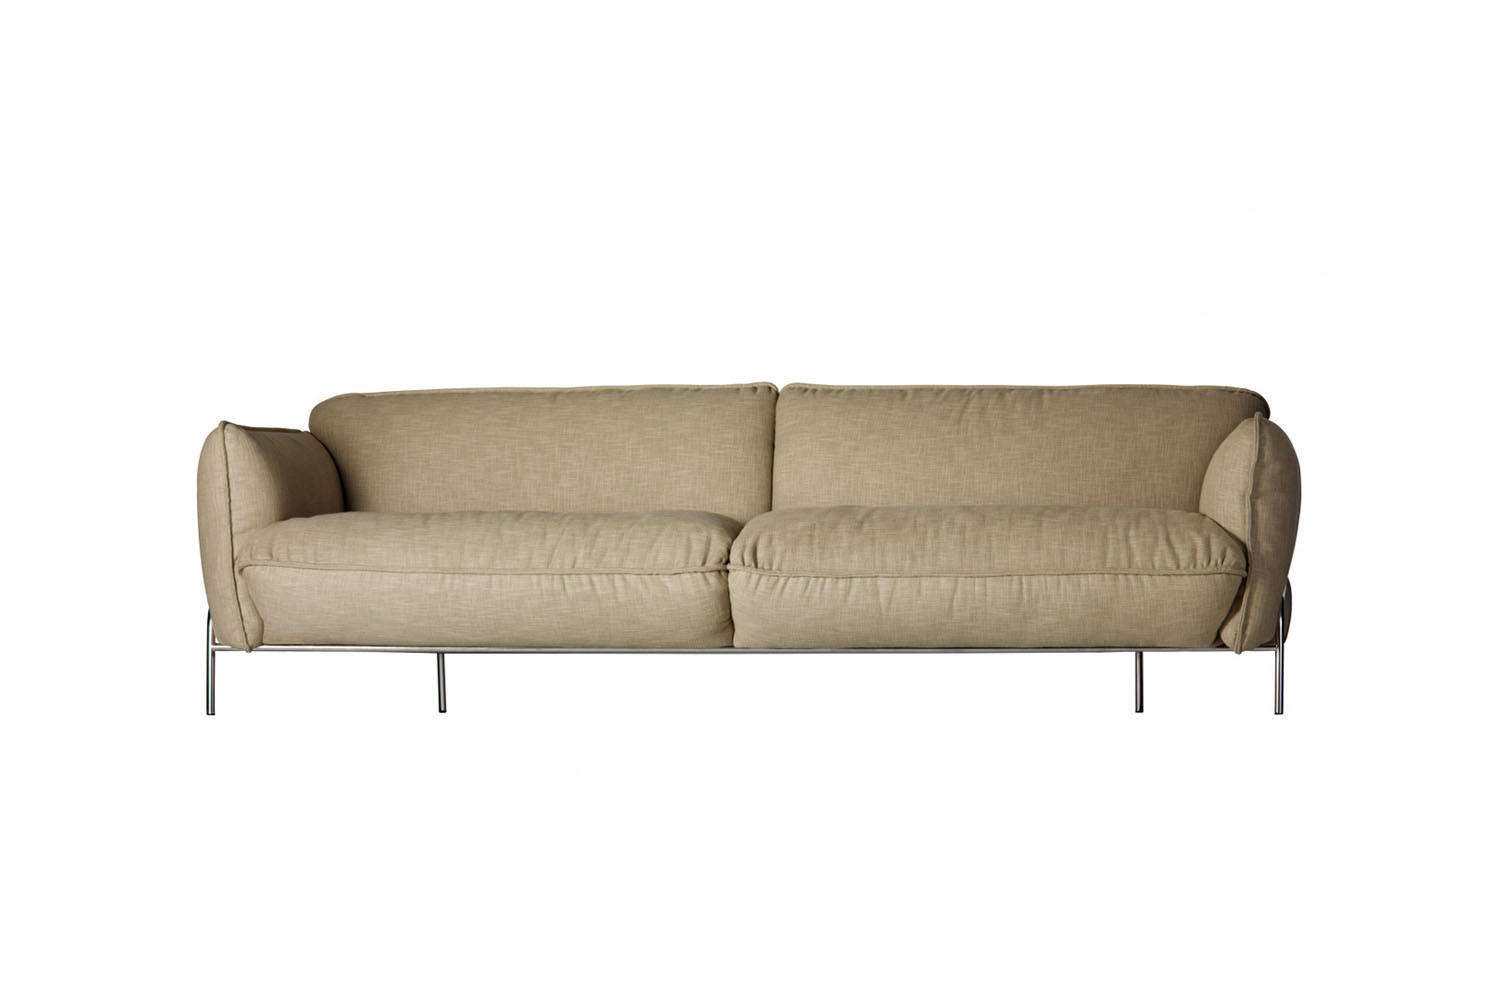 Another design from Claesson Koivisto Rune is the Continental Sofa for Swedese; $4,70